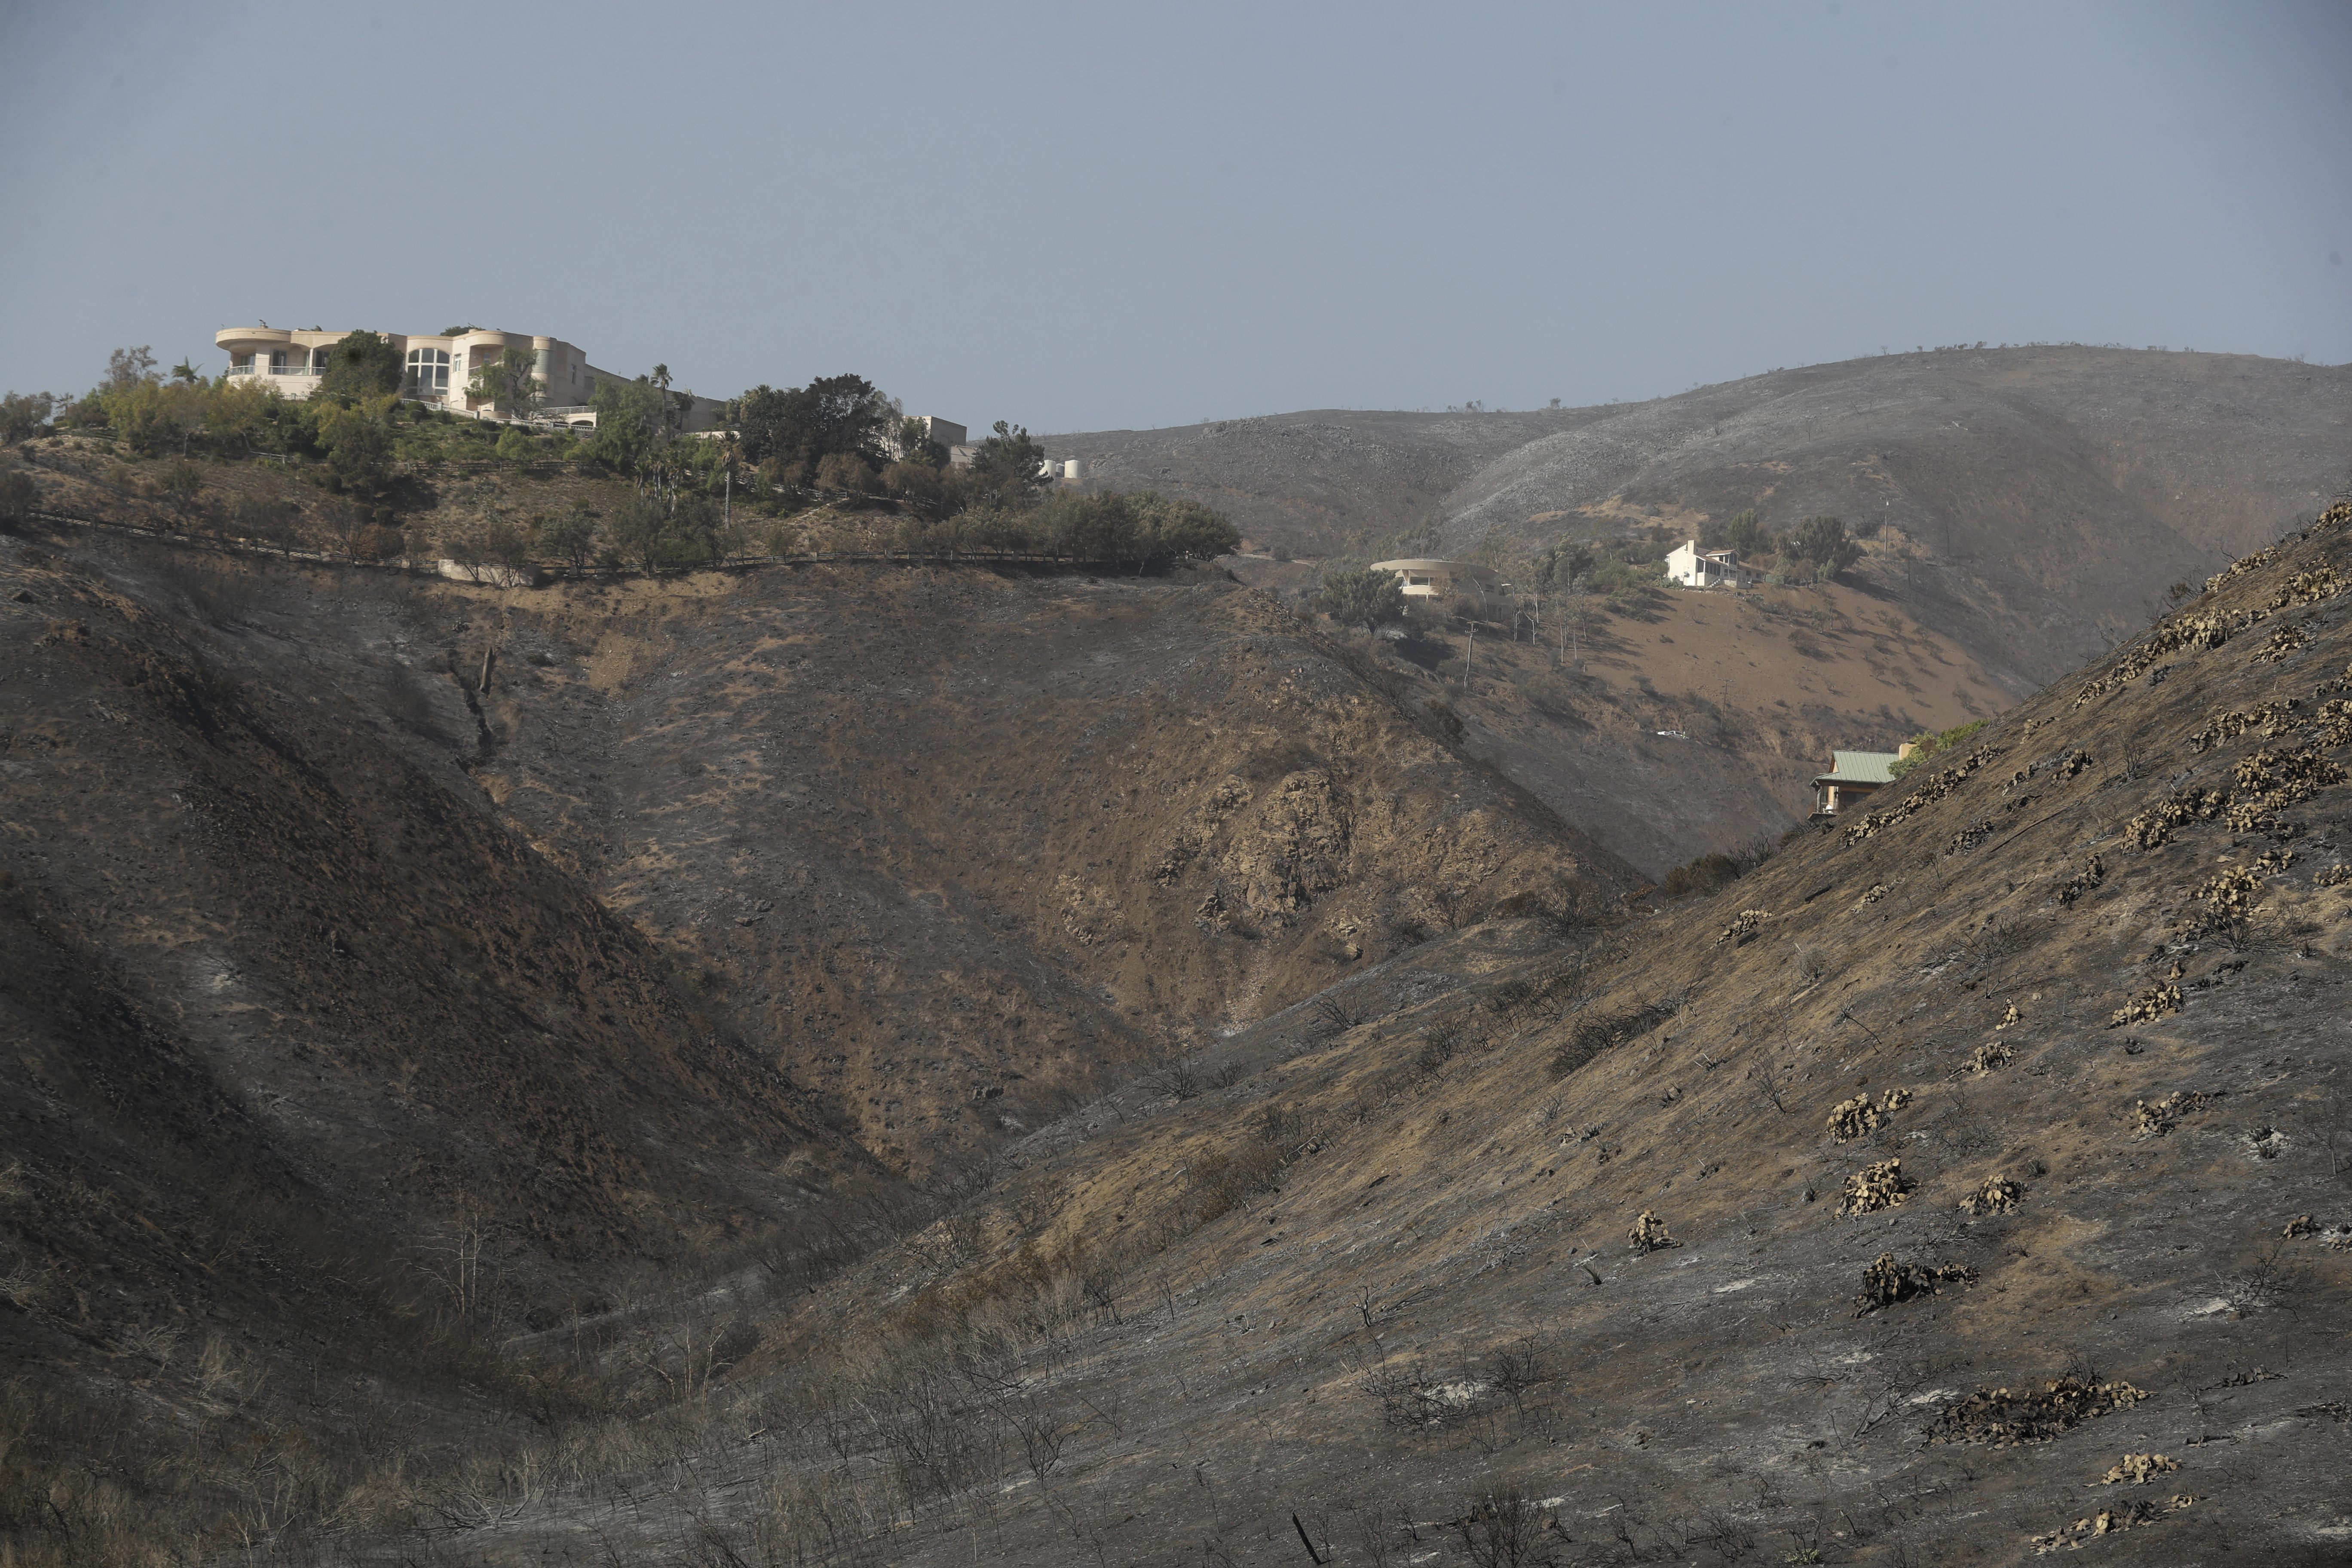 A home stands alone, at left, among the devastation left behind by a wildfire Monday, Nov. 12, 2018, in Malibu, Calif. (AP Photo/Marcio Jose Sanchez)